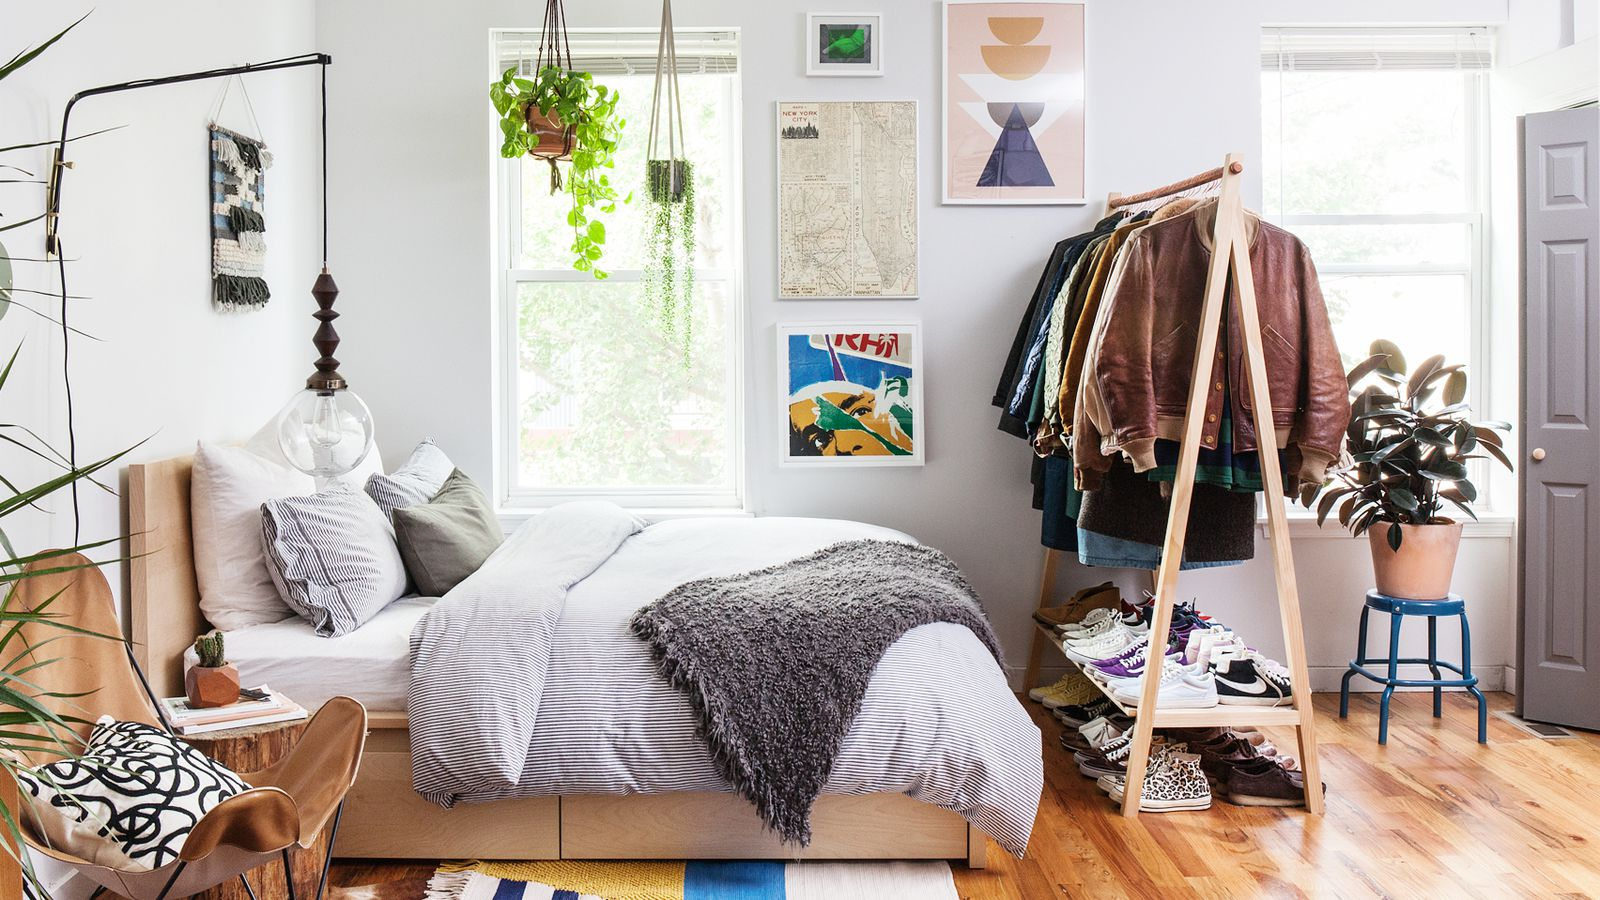 Small space big style in fishtown curbed philly - Big style small spaces photos ...